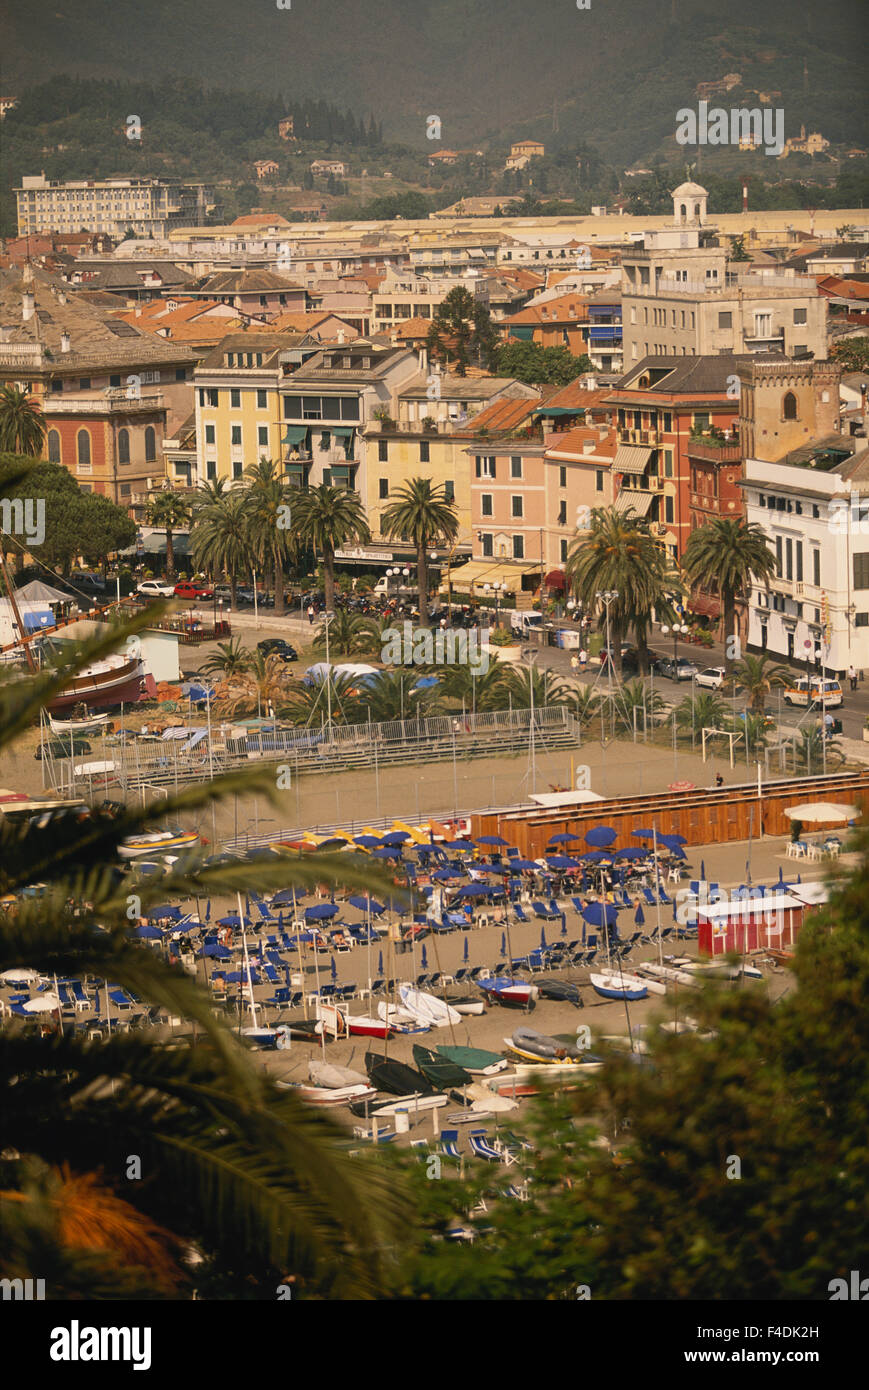 Italy, Liguria, Riviera Di Levante. townscape. (Large format sizes available) - Stock Image